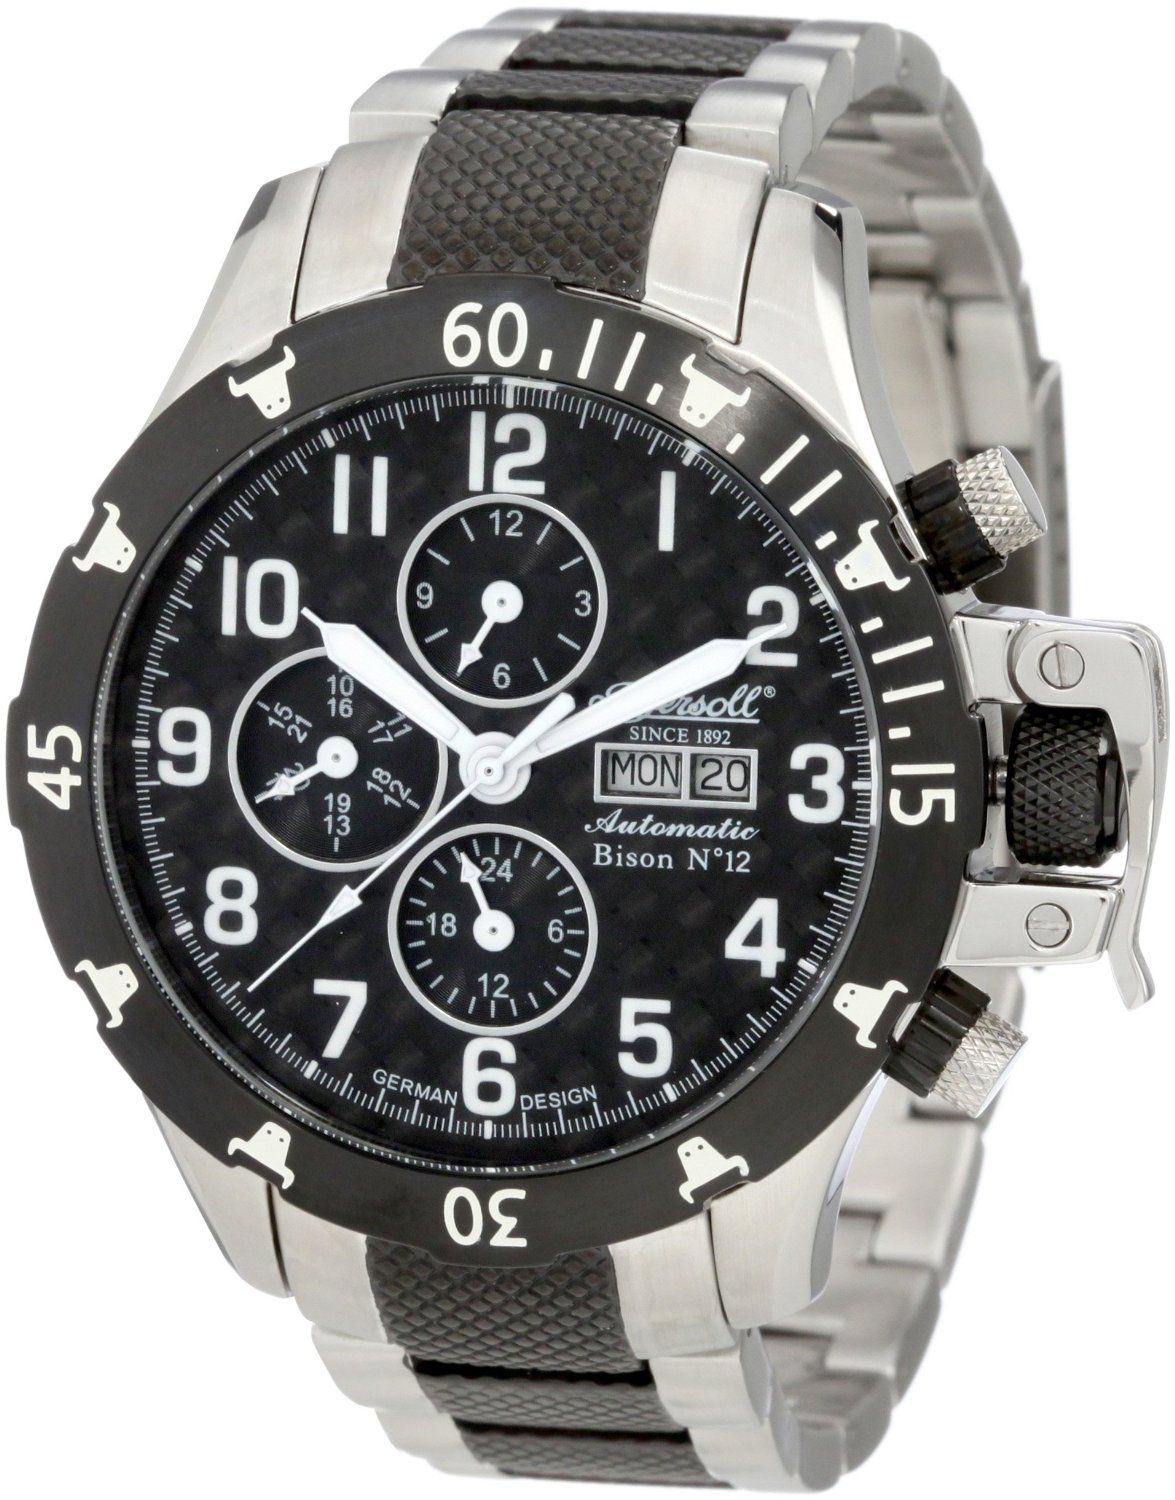 Ingersoll Men's IN2803BKM Automatic Bison Number 12 Watch, (watches,  bulova, mens, automatic, automatic watches, casual watch, dress watches,  marine star, ...